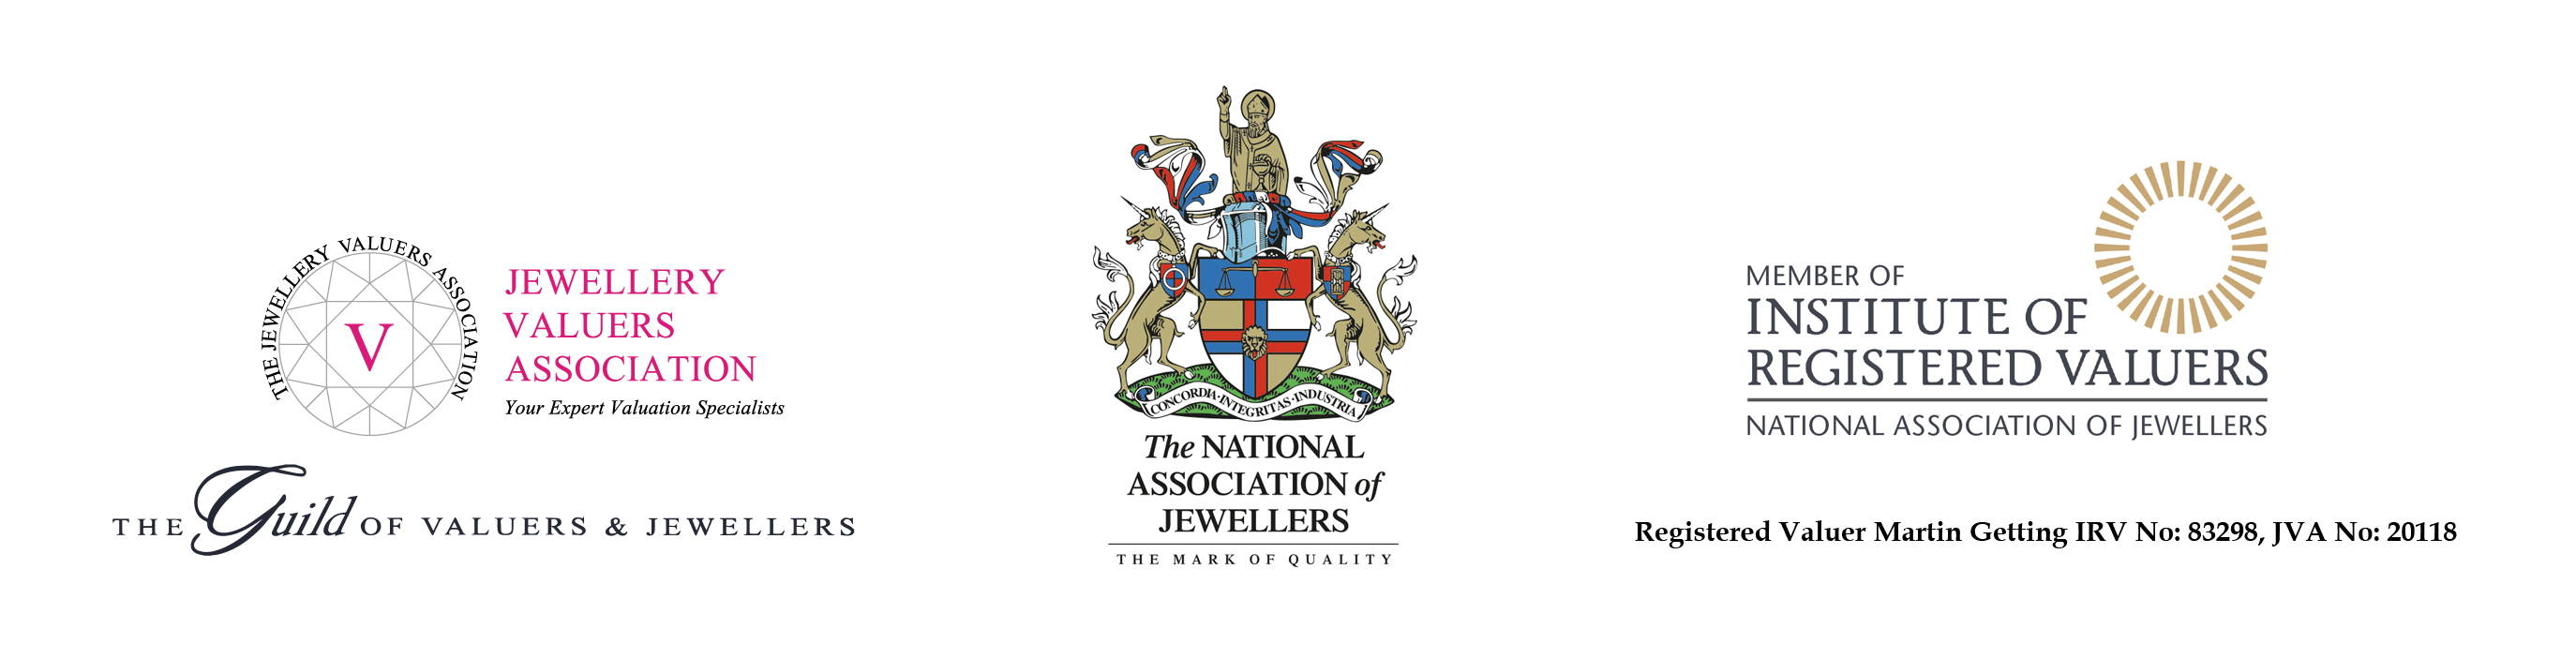 Members of Guild of Valuers, NAG and Institute of Registered valuerss